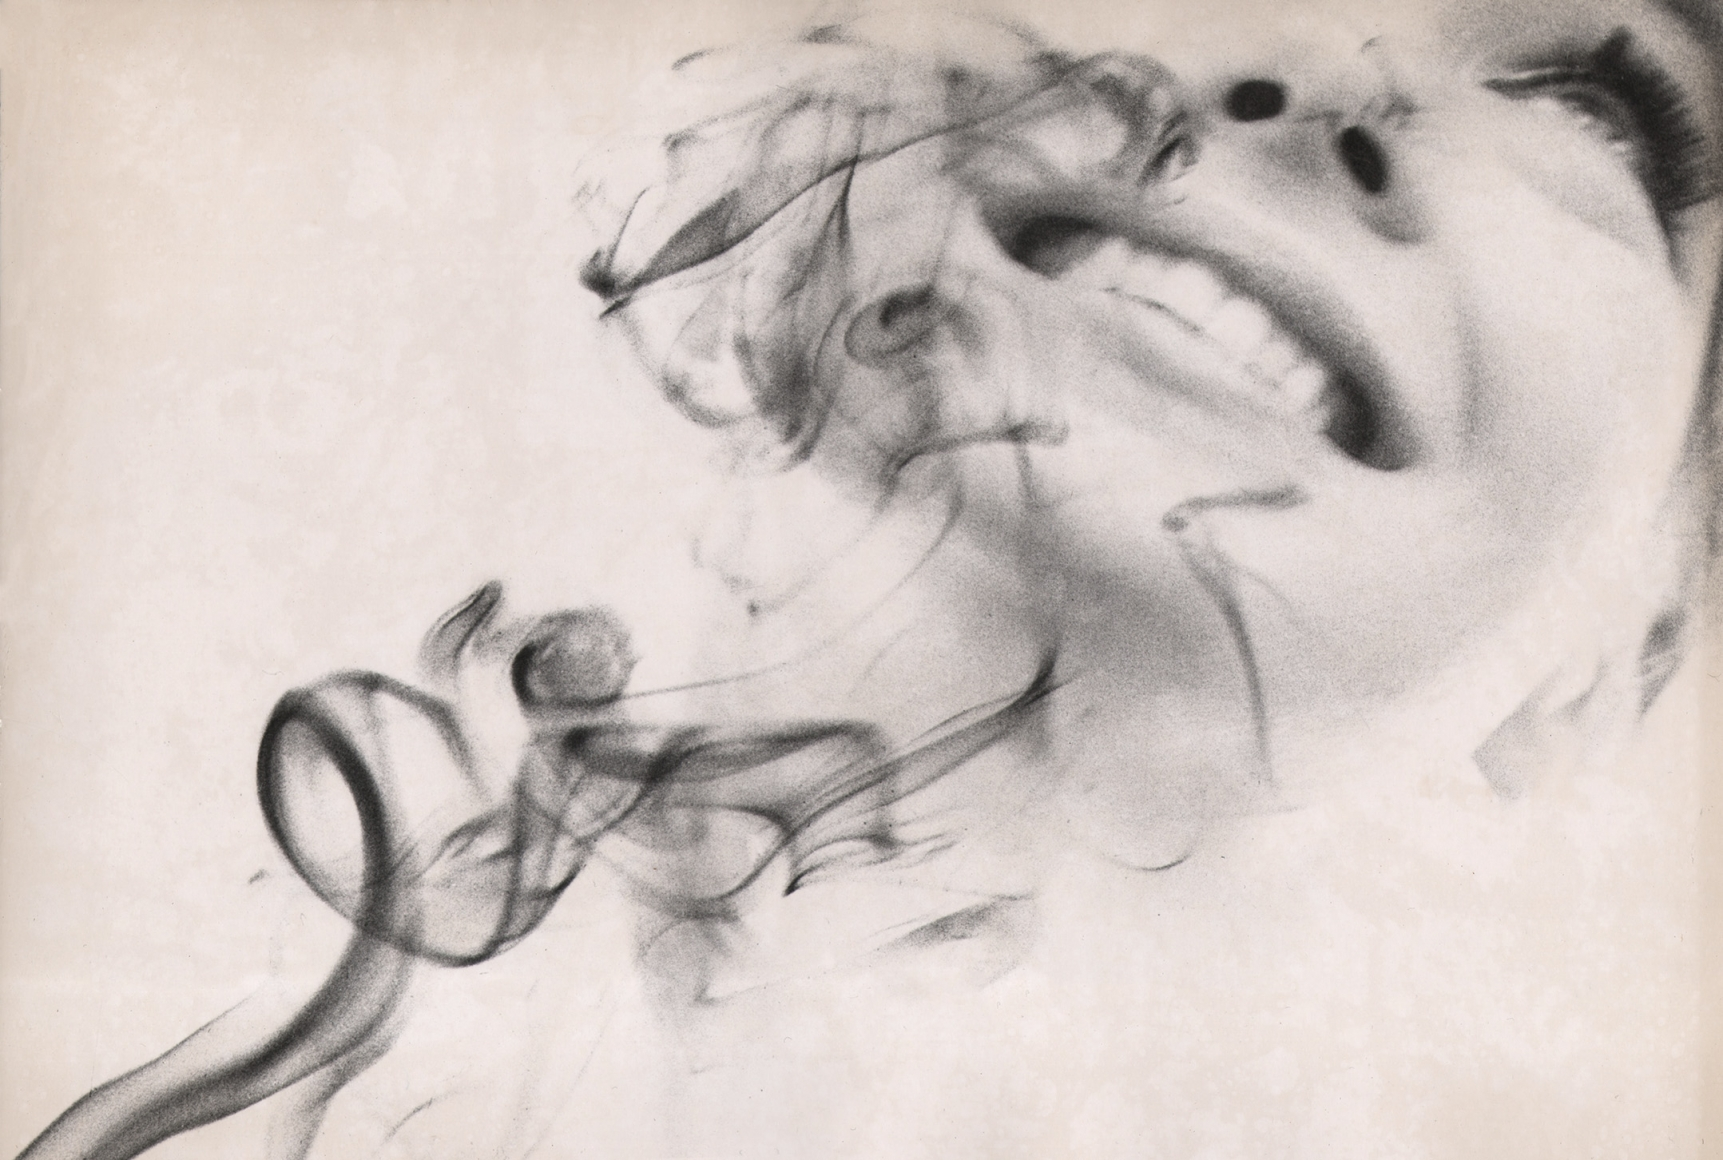 15. David Attie, Saloon Society, 1959. Composite photo featuring wisps of smoke and a smiling woman's face.